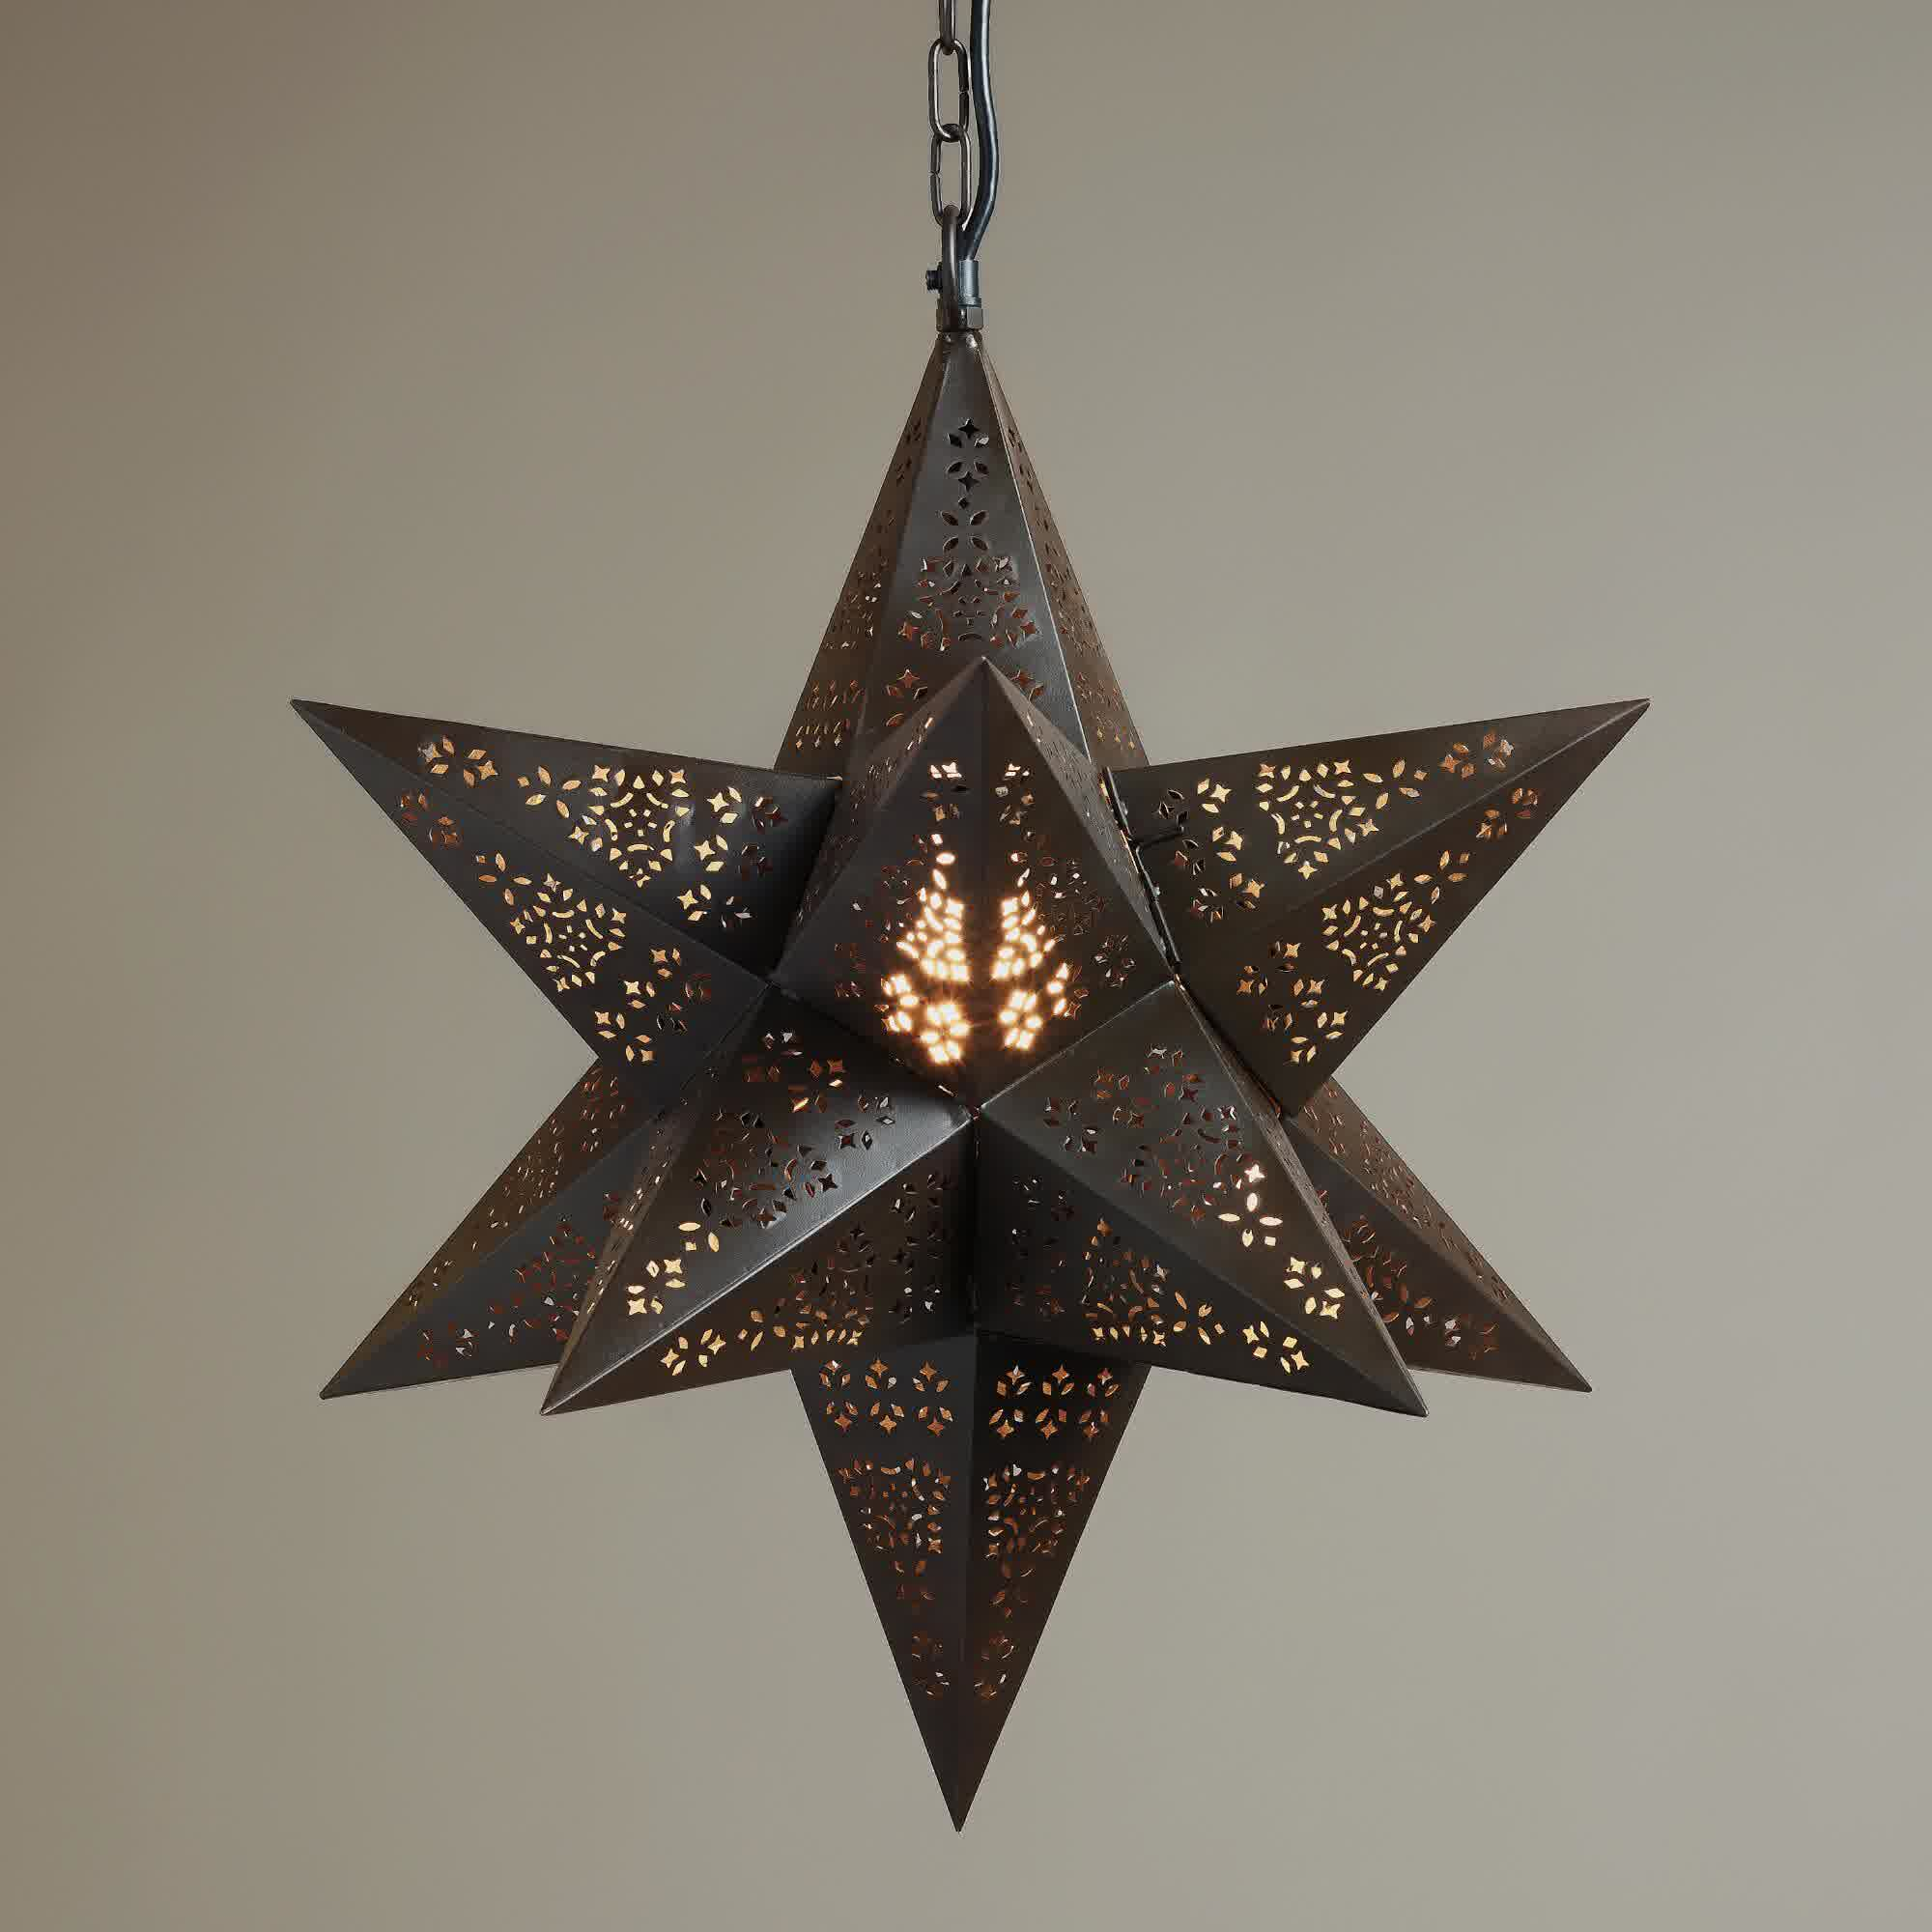 moravian star pendant light fixture made of metal with chain for. Black Bedroom Furniture Sets. Home Design Ideas